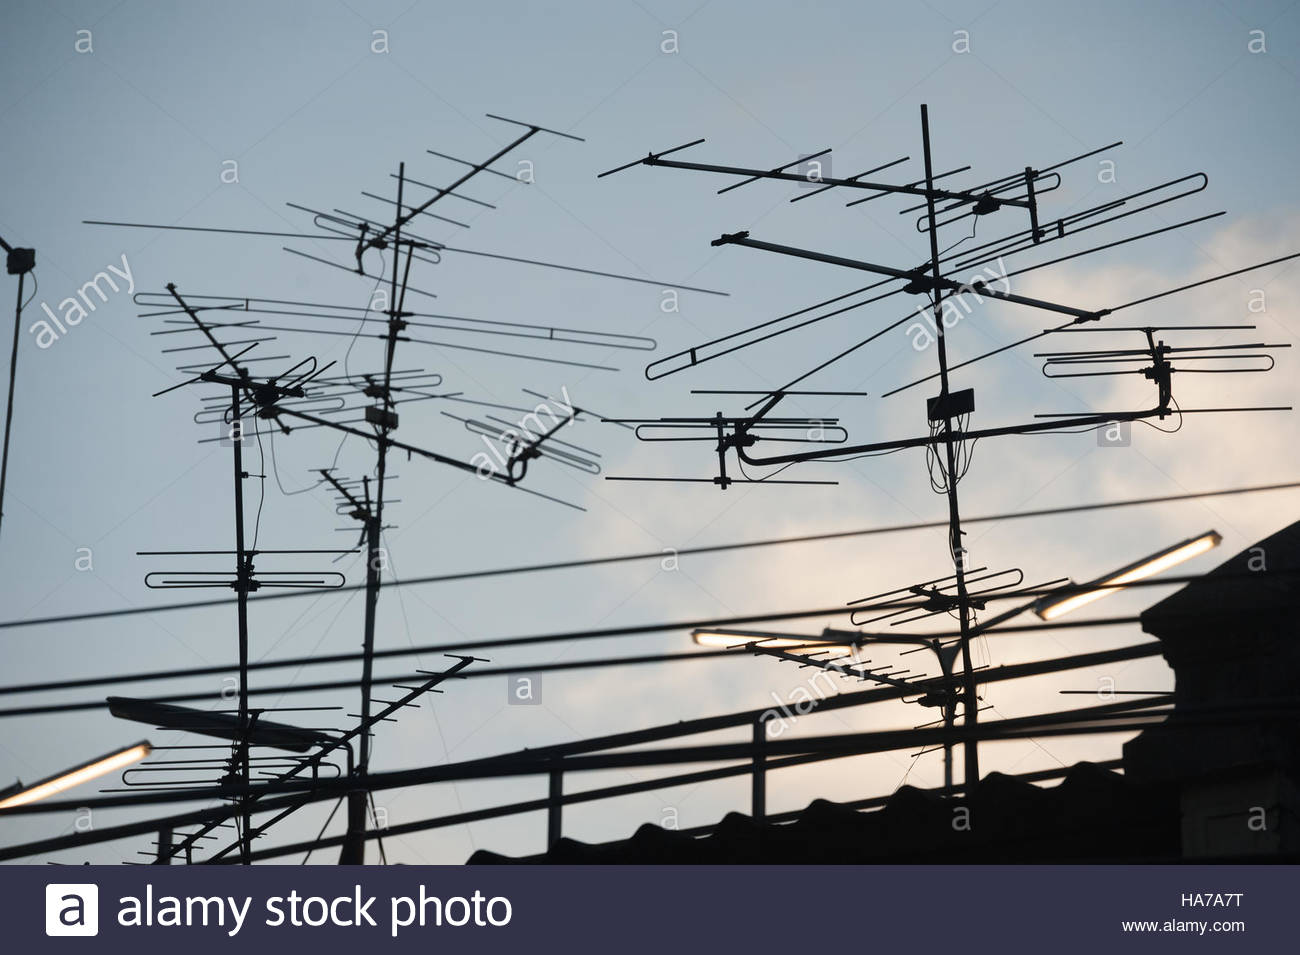 Bangkok Thailand Television aerials silhouetted against the setting sun. - Stock Image